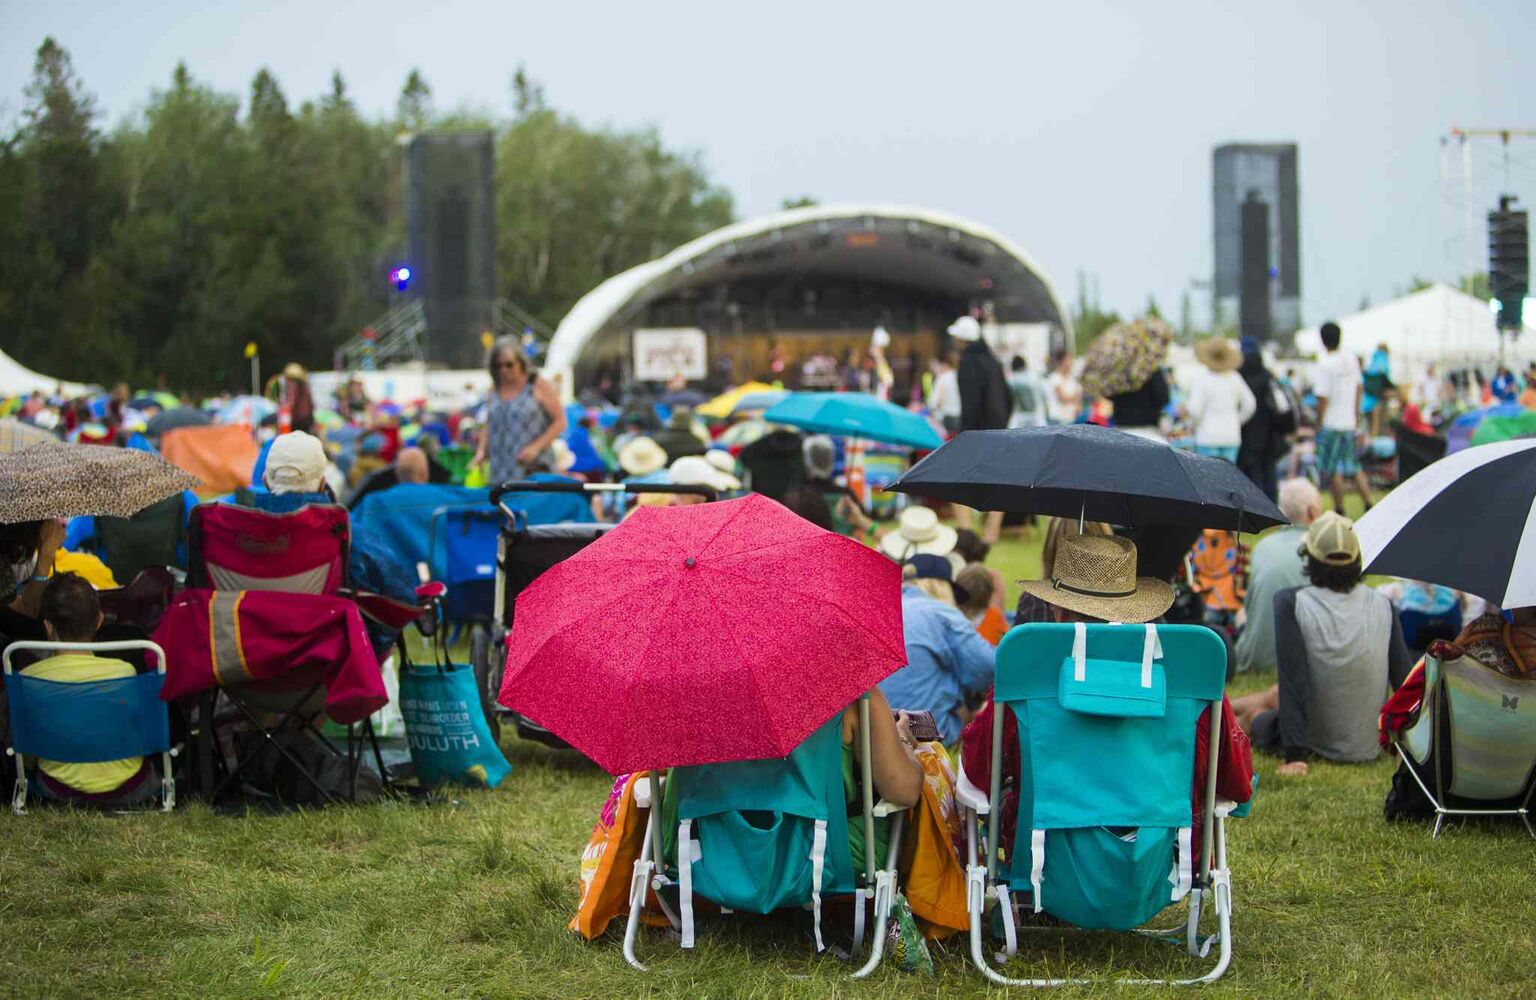 People enjoy the Winnipeg Folk Festival despite the brief spot of rain at Birds Hill Provincial Park on Saturday, July 11, 2015.   Mikaela MacKenzie / Winnipeg Free Press (Winnipeg Free Press)